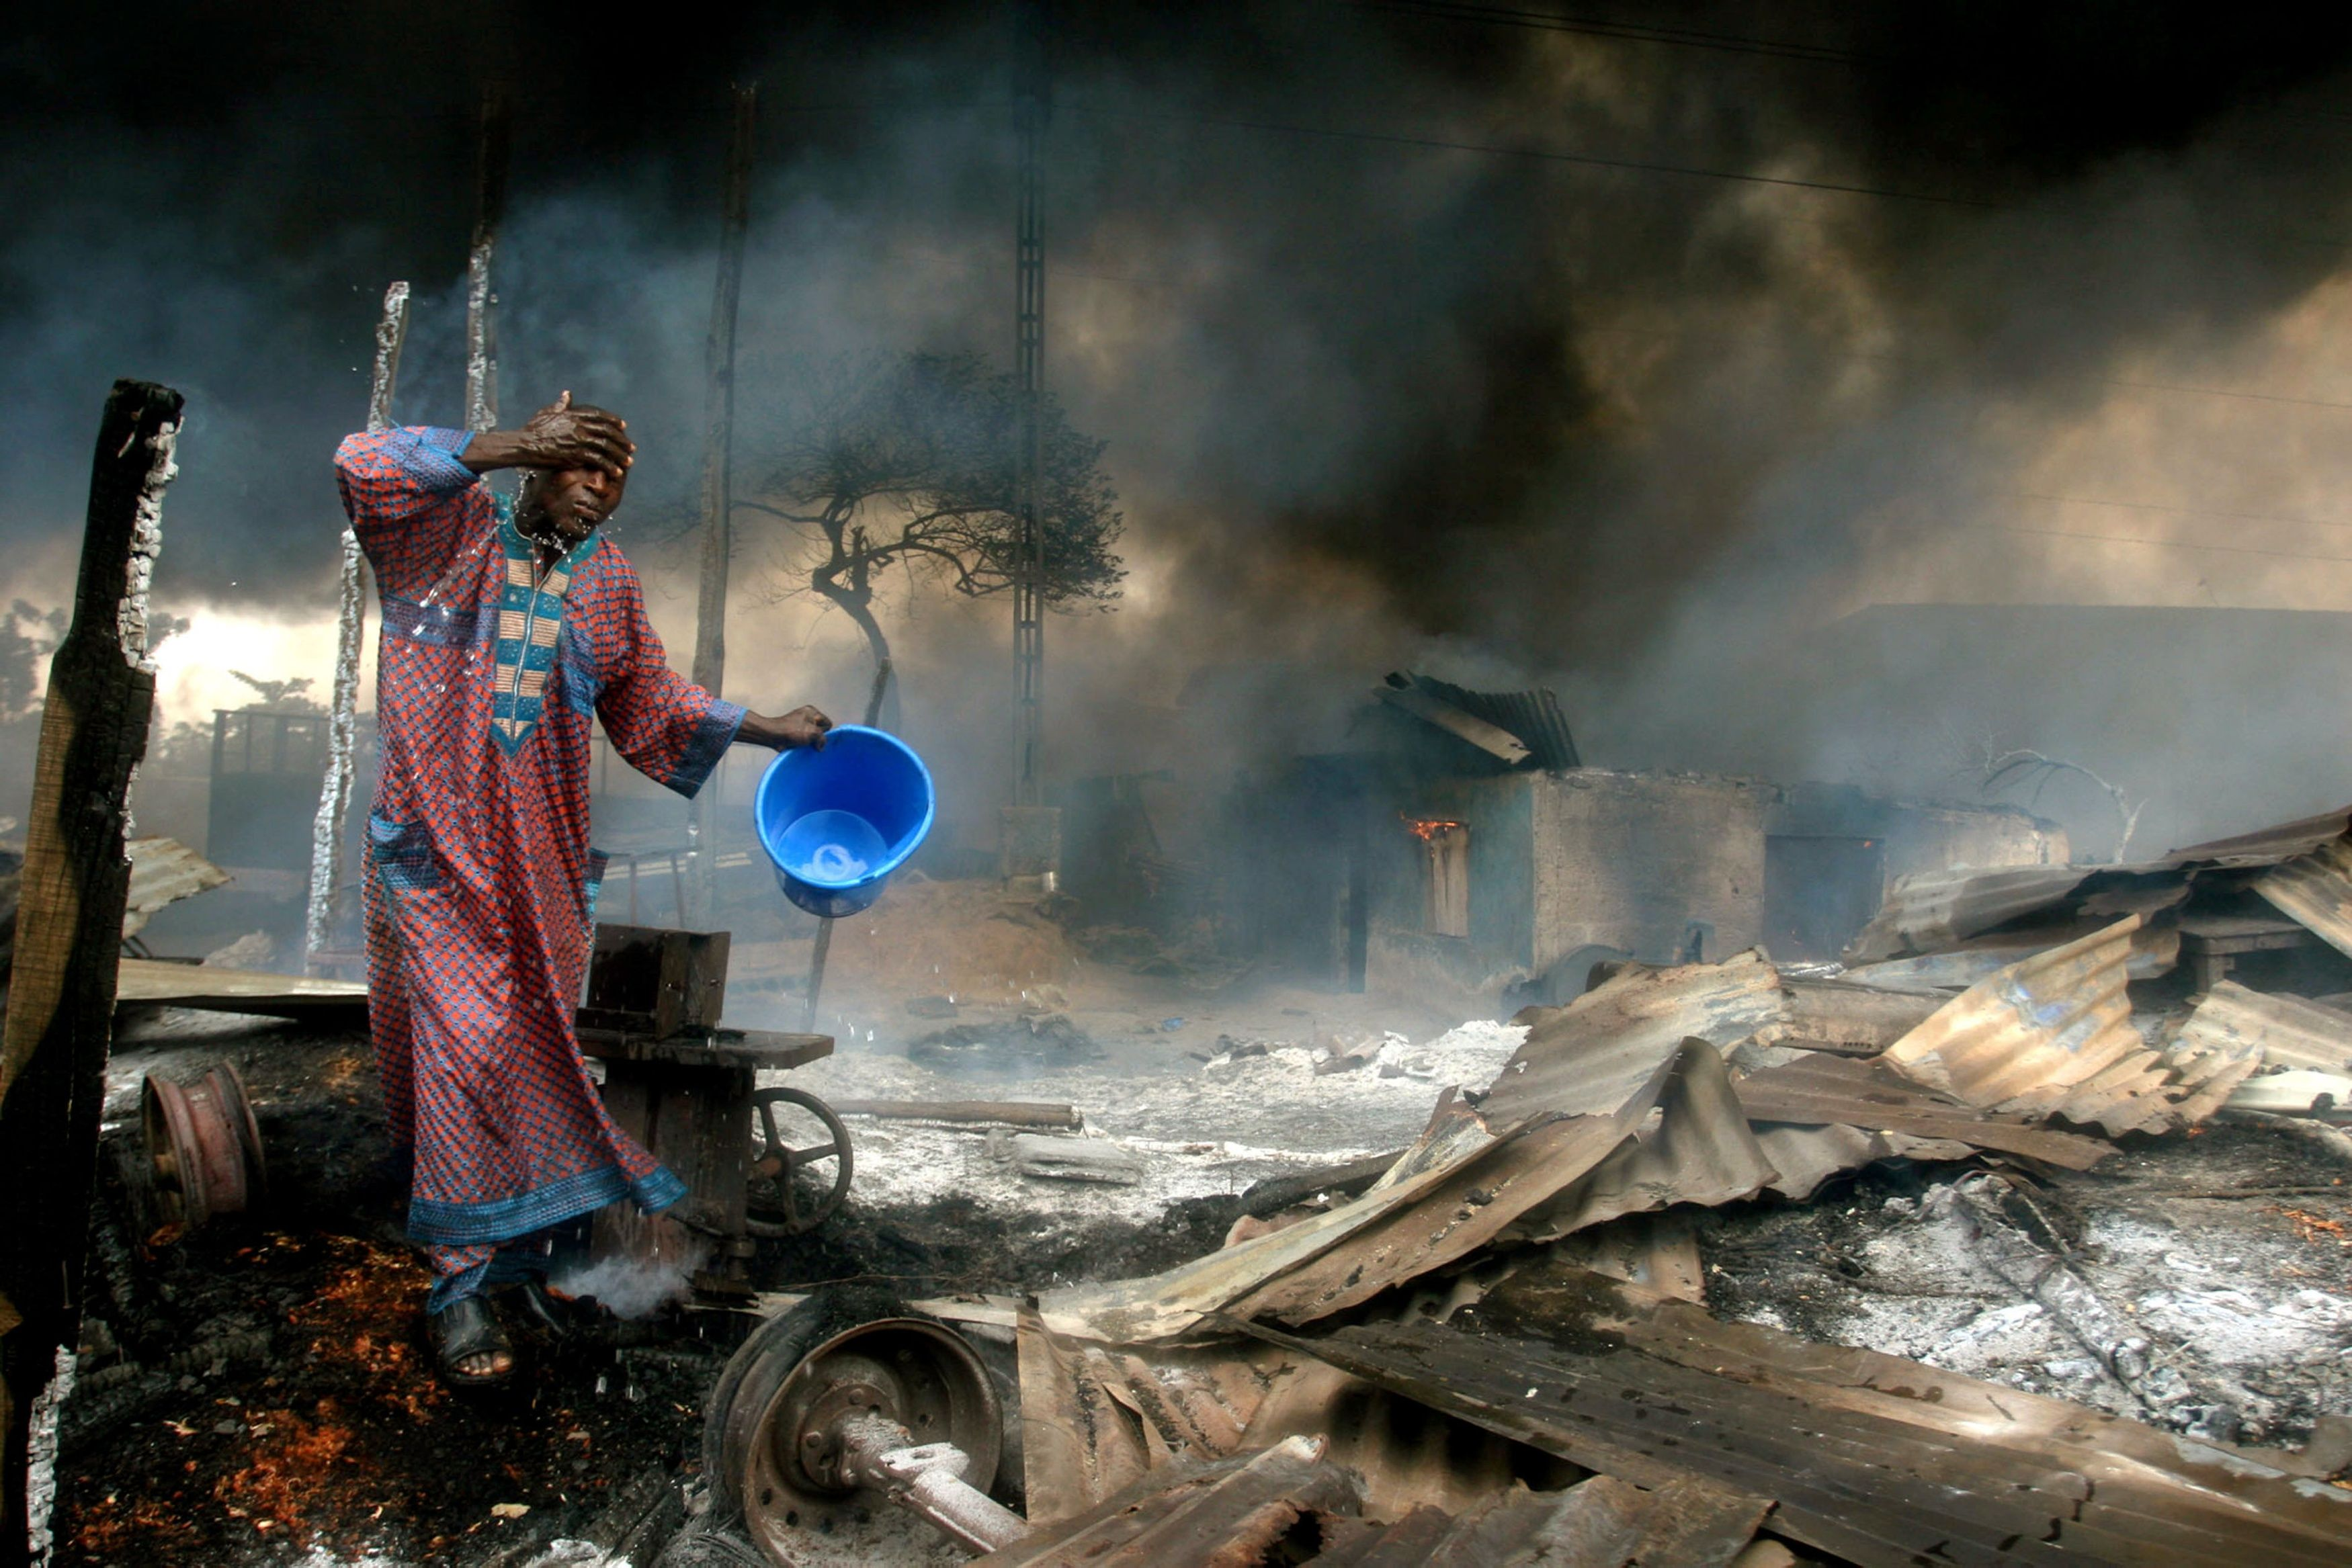 File photo of a man rinsing soot from his face at the scene of a gas pipeline explosion near Nigeria's commercial capital Lagos